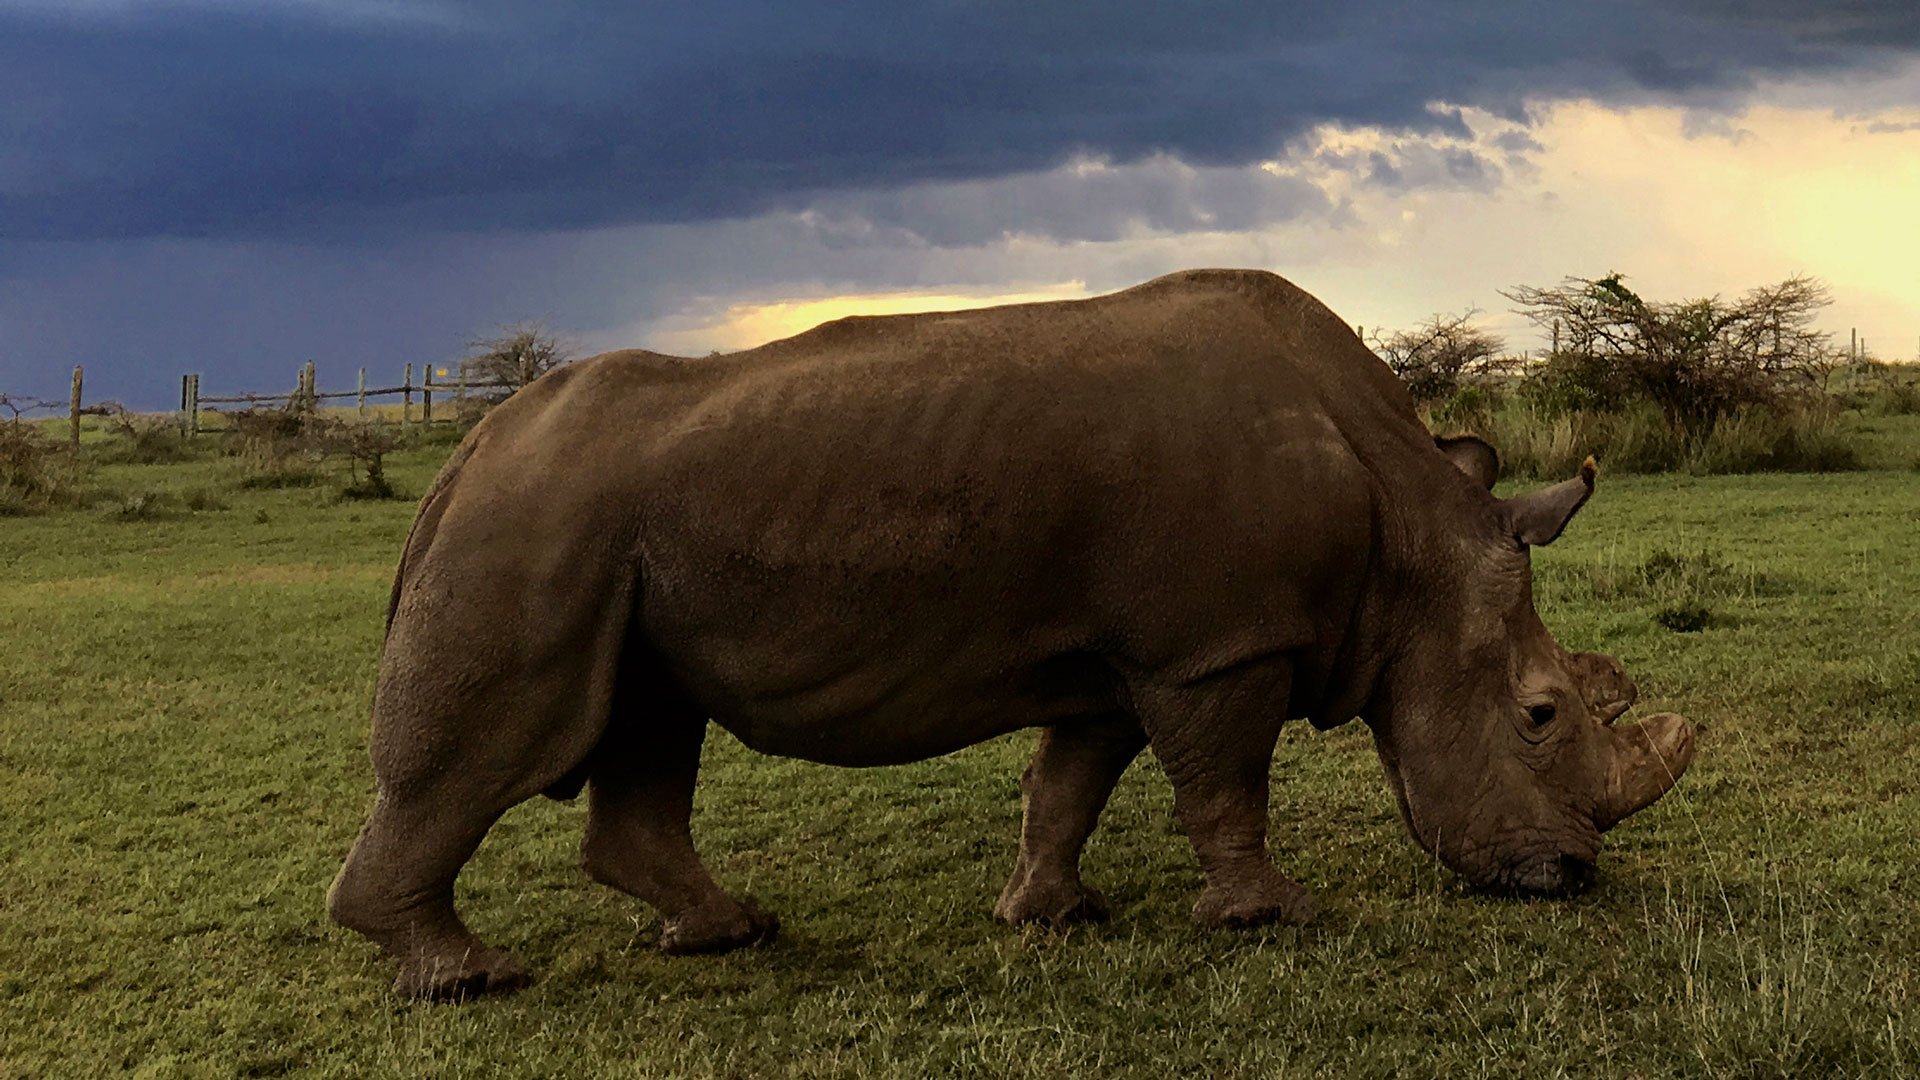 Sudan, last male northern white rhino, living in a Kenyan sanctuary under 24-hour armed guard.